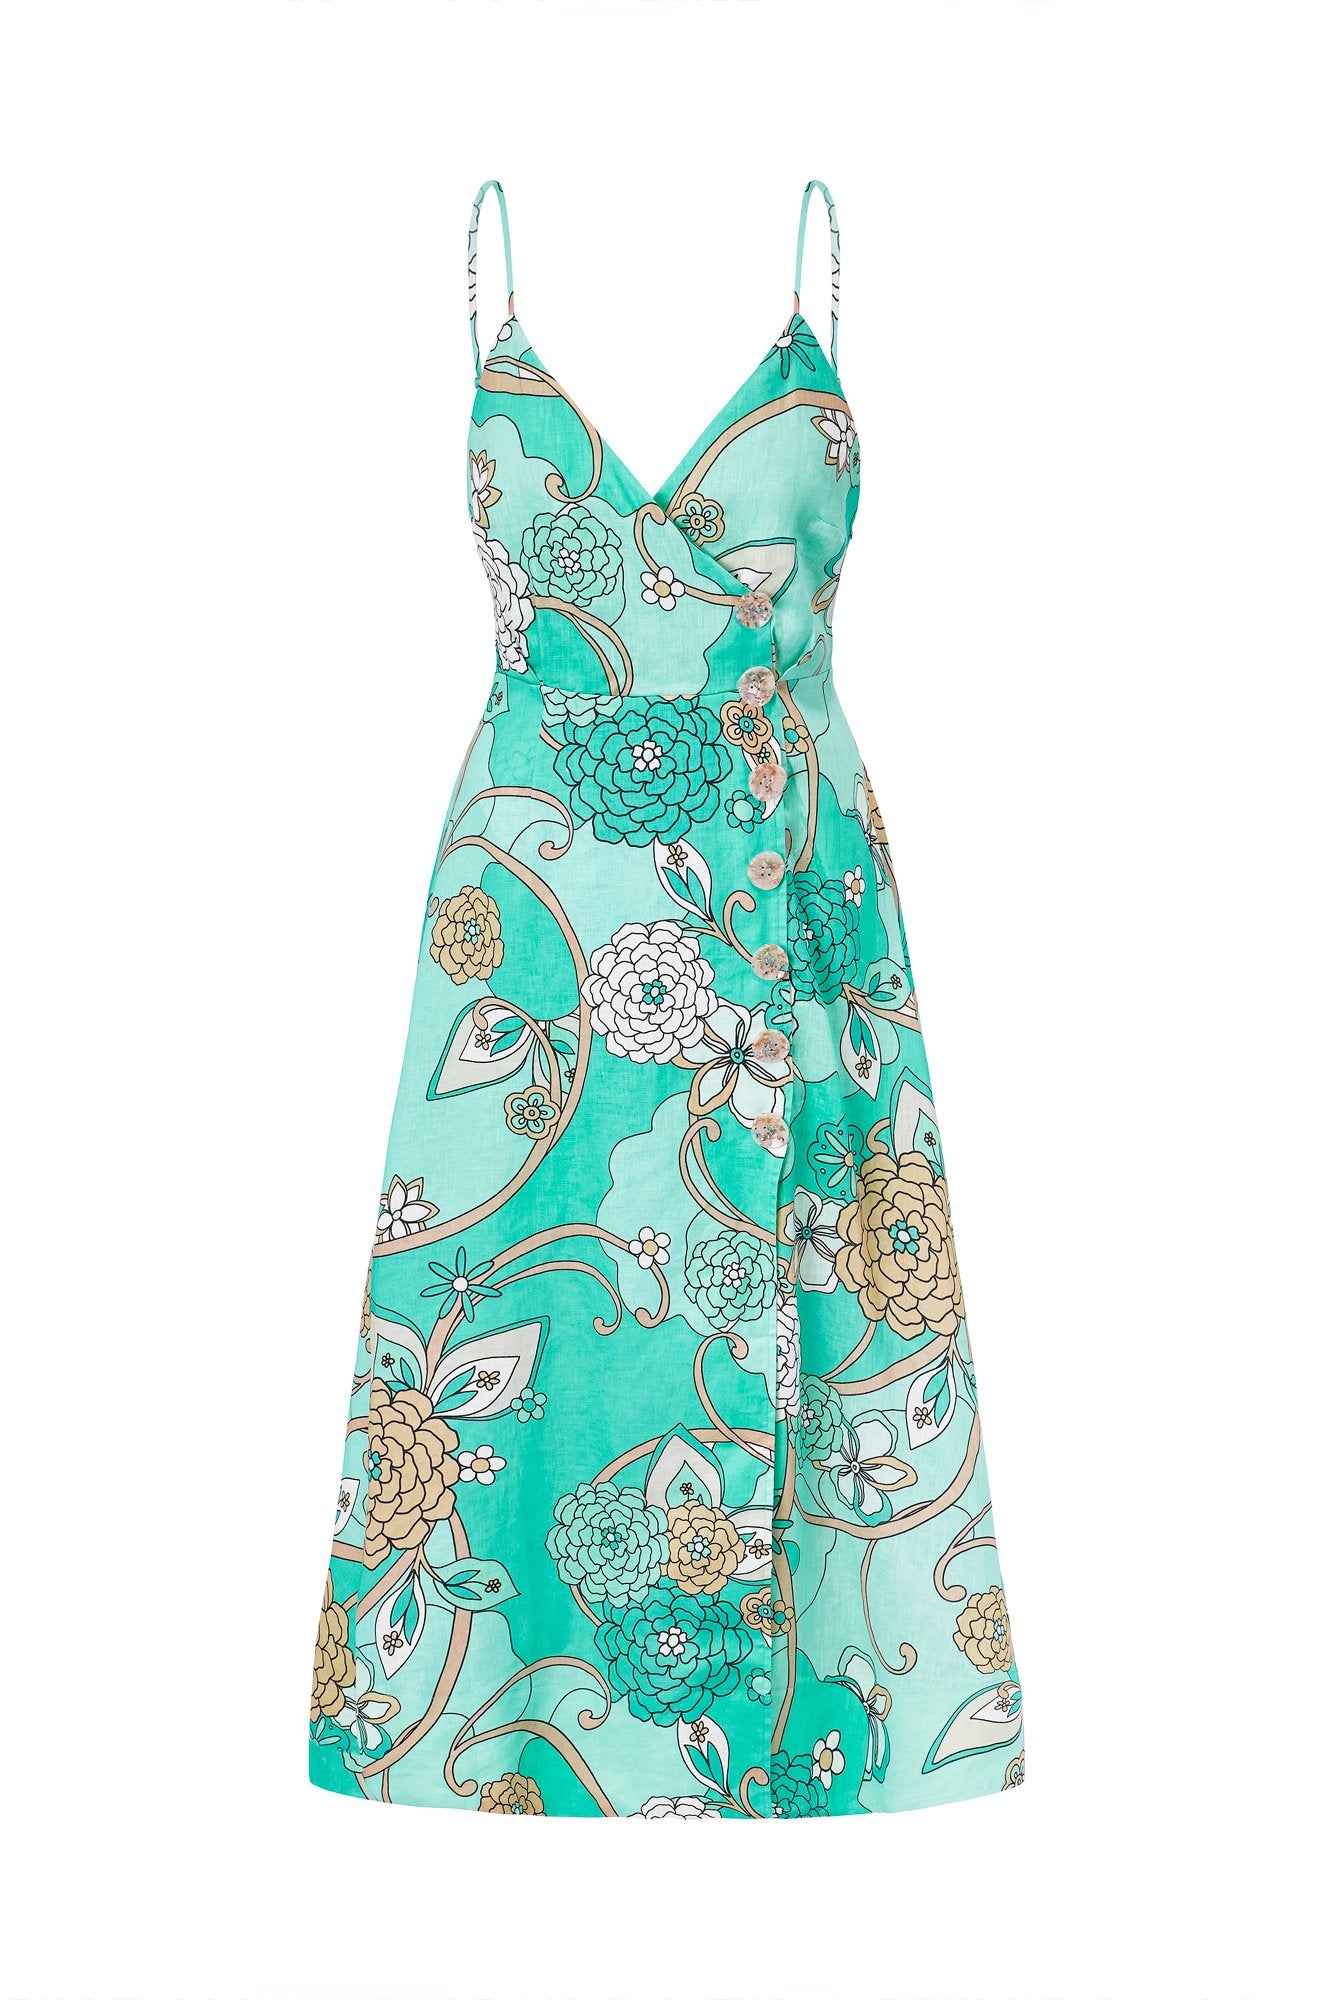 Tara Dress - Piscine Psychedelic Floral